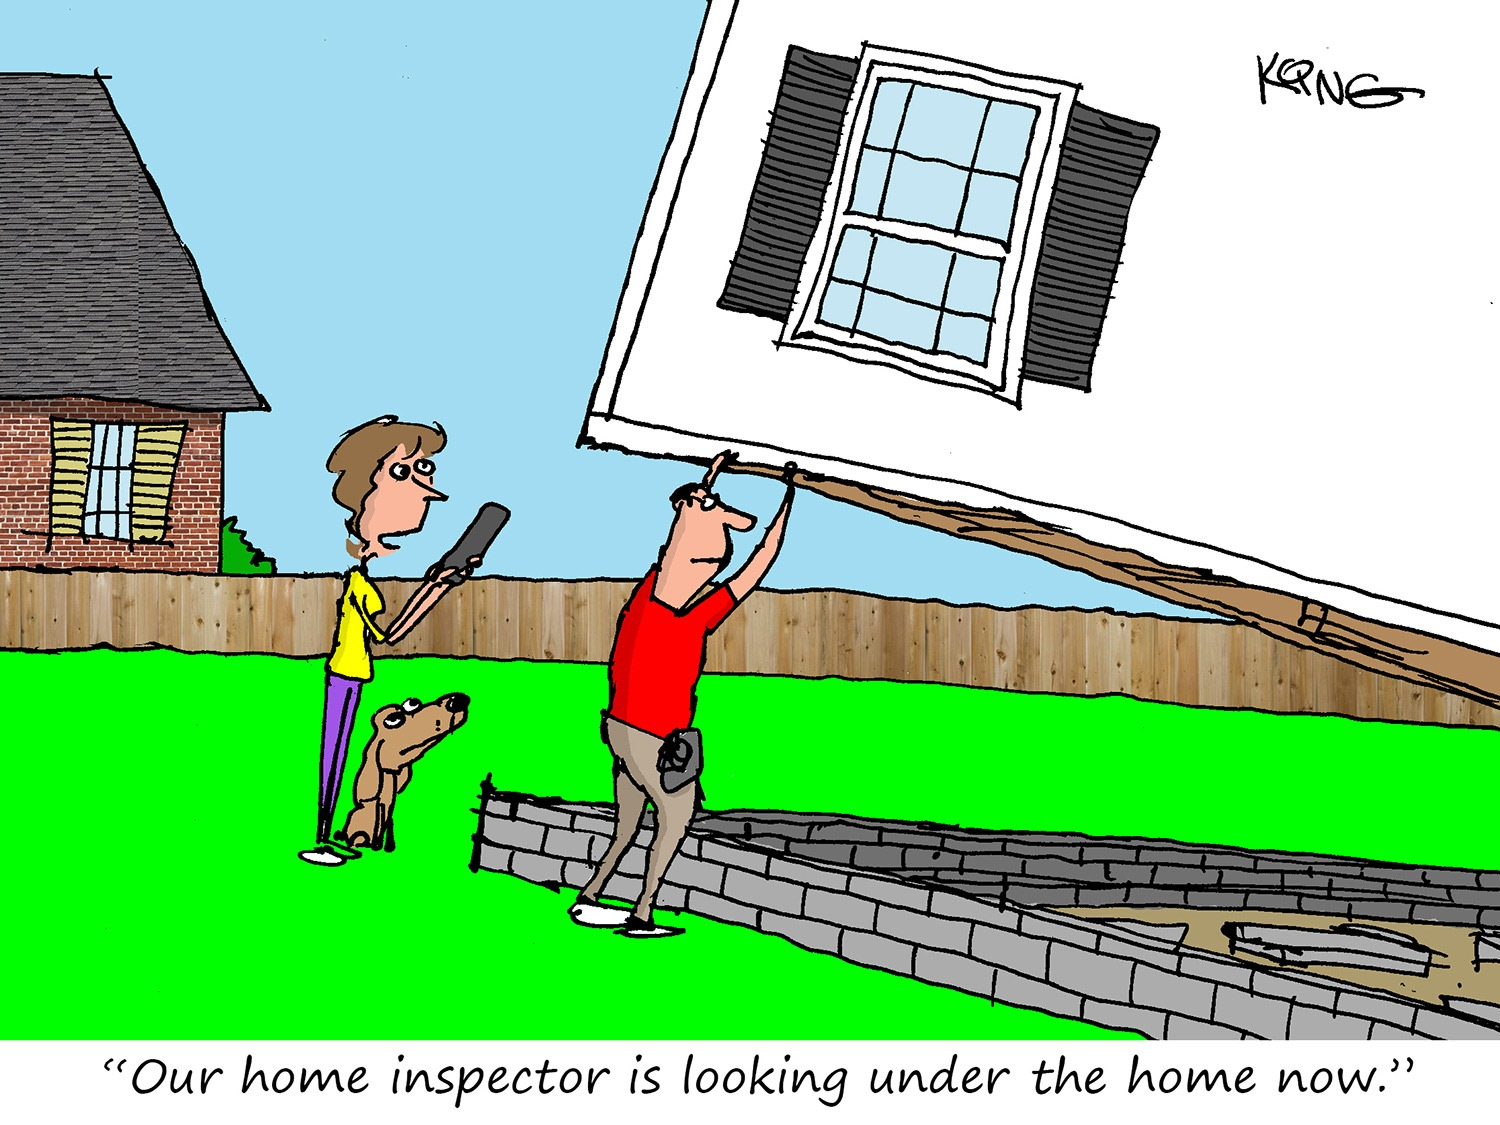 Looking Under the Home Cartoon